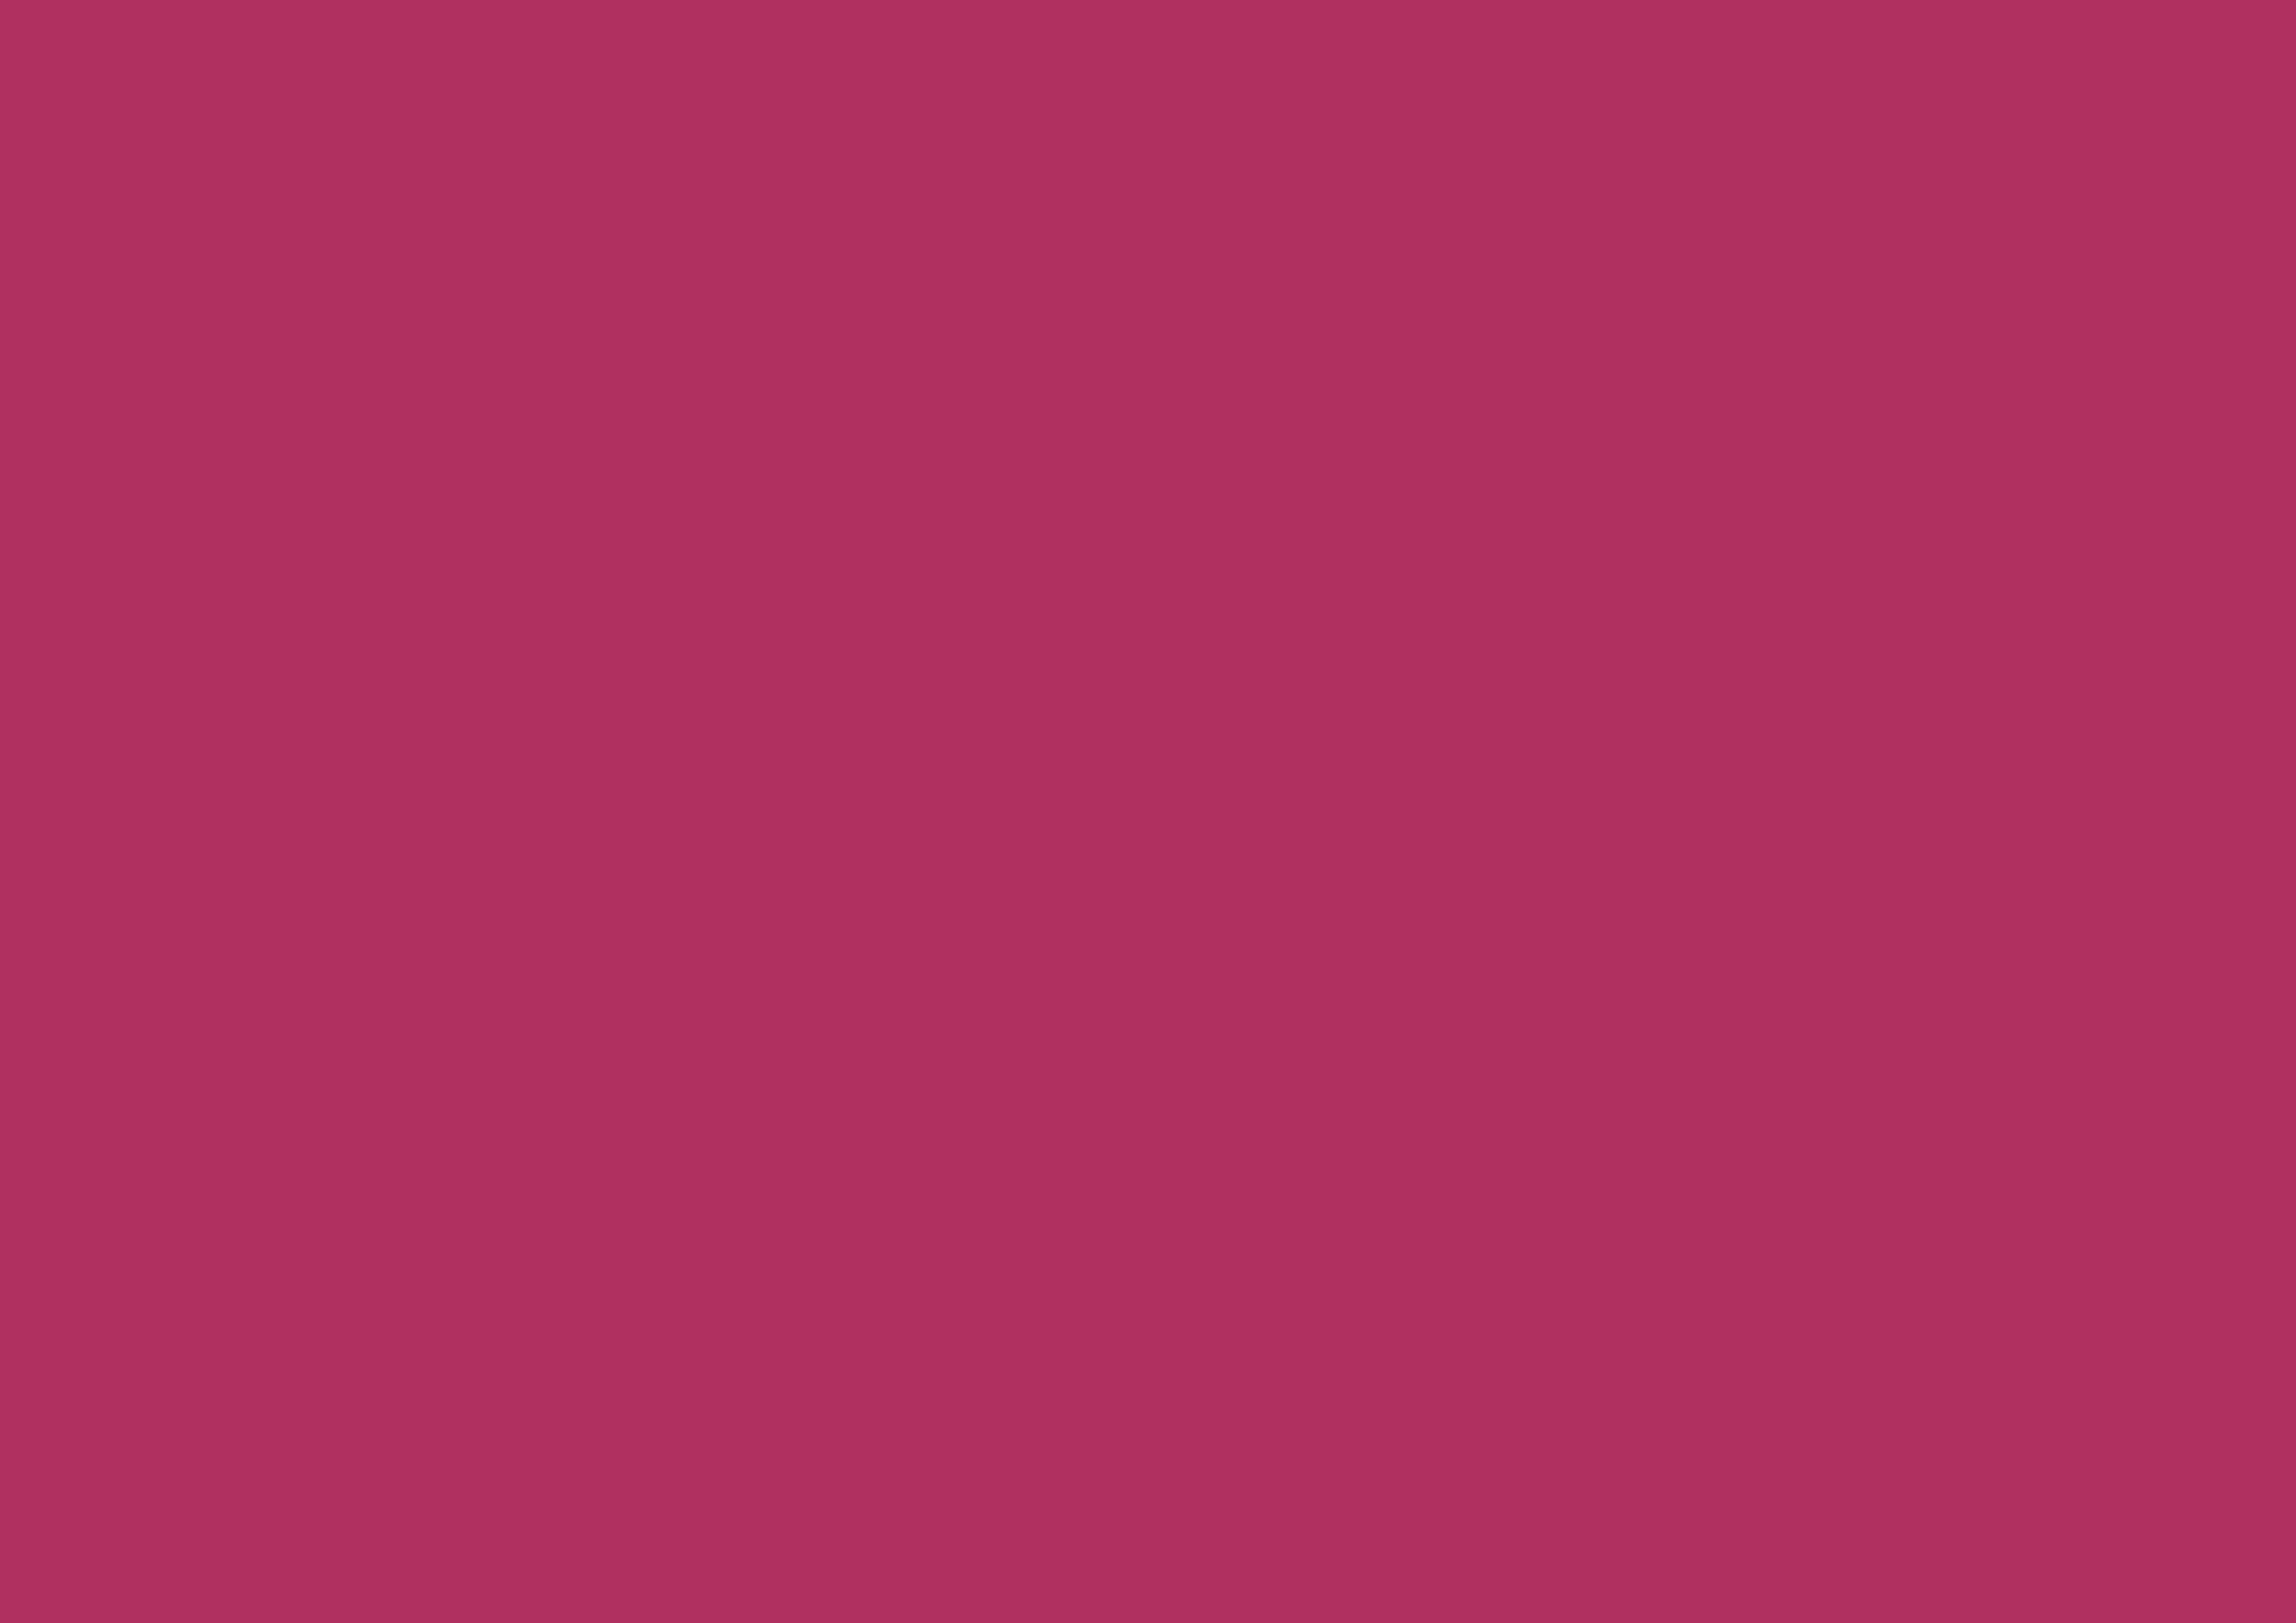 3508x2480 Rich Maroon Solid Color Background